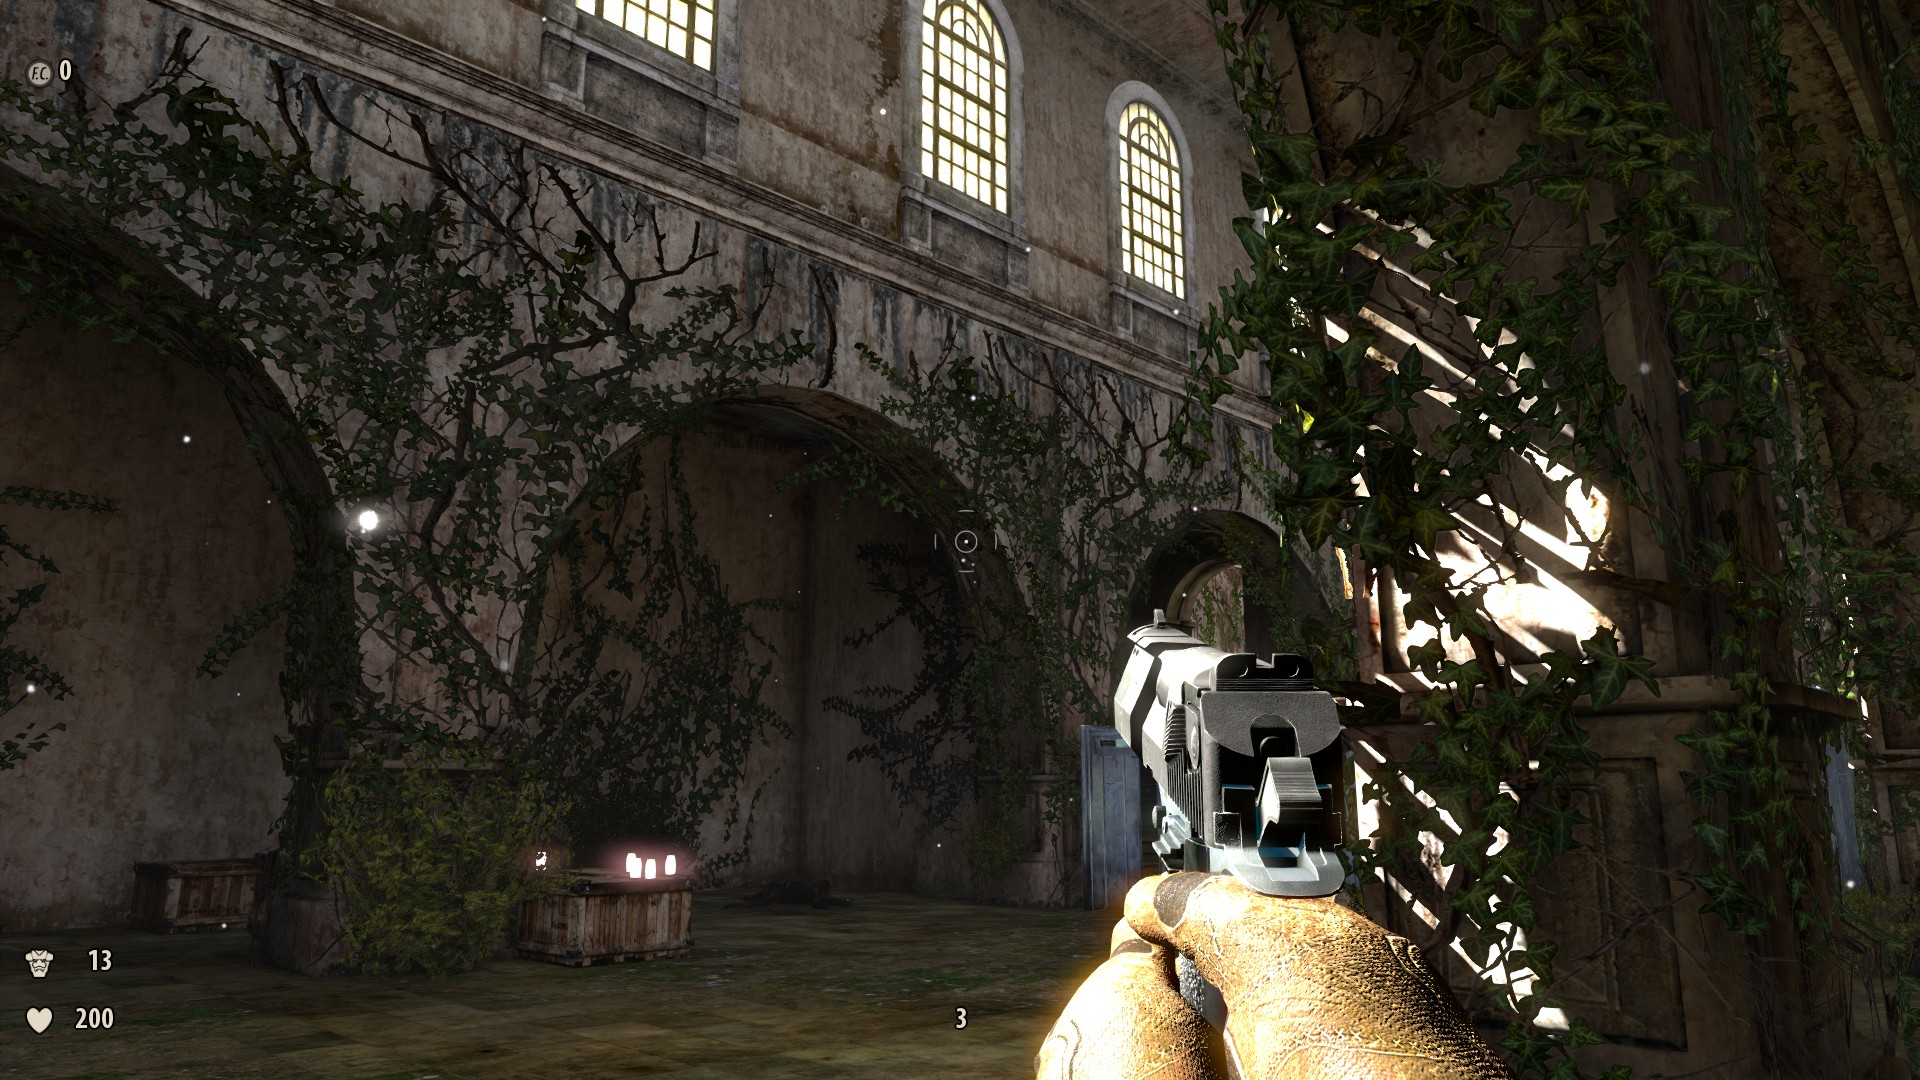 Media asset in full size related to 3dfxzone.it news item entitled as follows: YouTube Gaming   Serious Sam 3: BFE   Gameplay footage with maxed-out graphics   Image Name: news31800_Serious-Sam-3-BFE-Serious-Engine-Screenshot_1.jpg